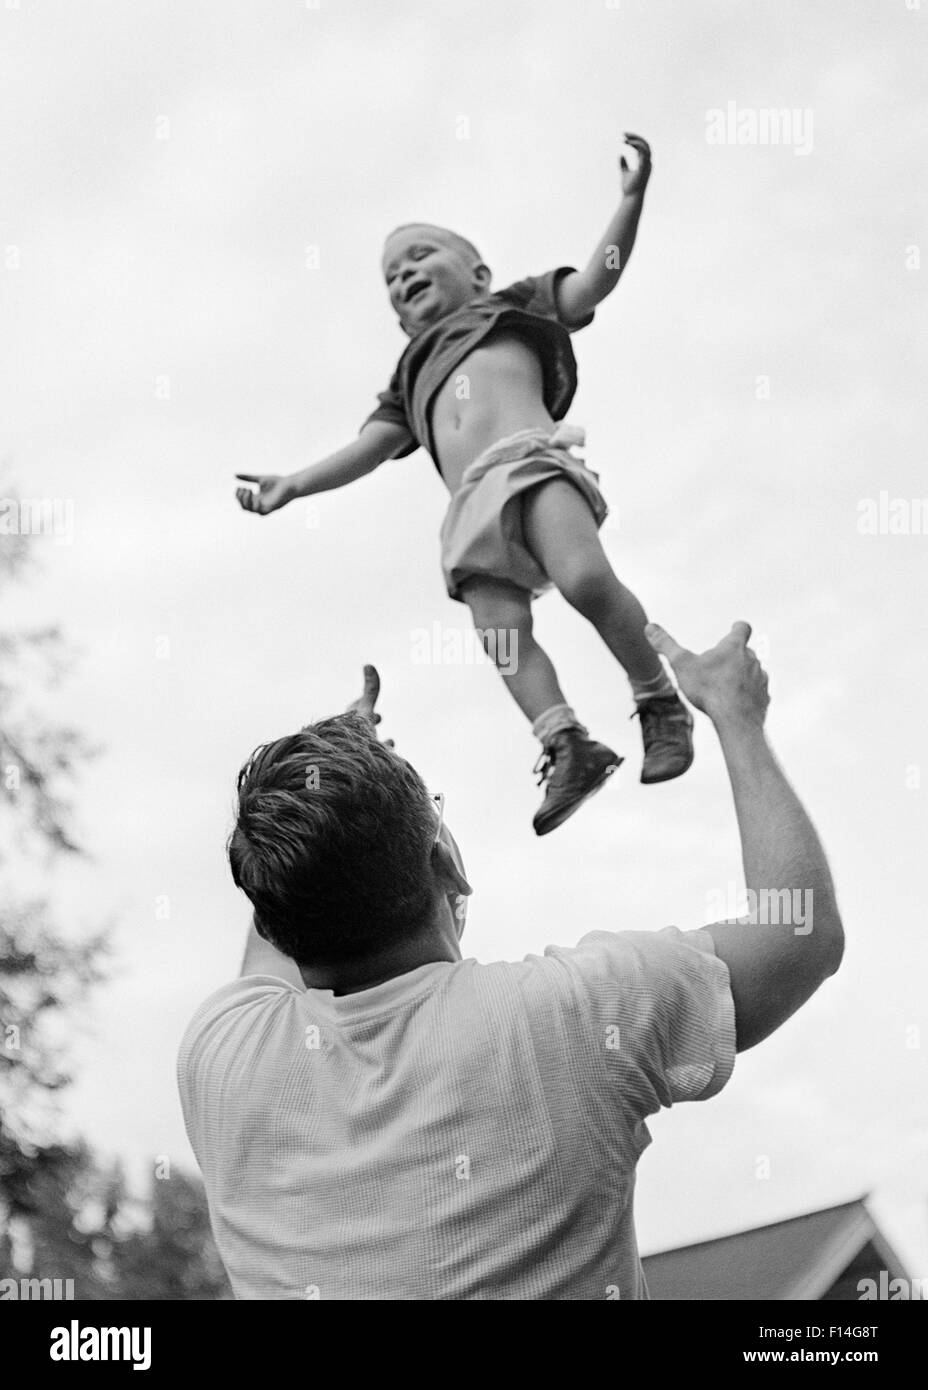 1950s 1960s FATHER TOSSING HIS SON UP INTO THE AIR - Stock Image